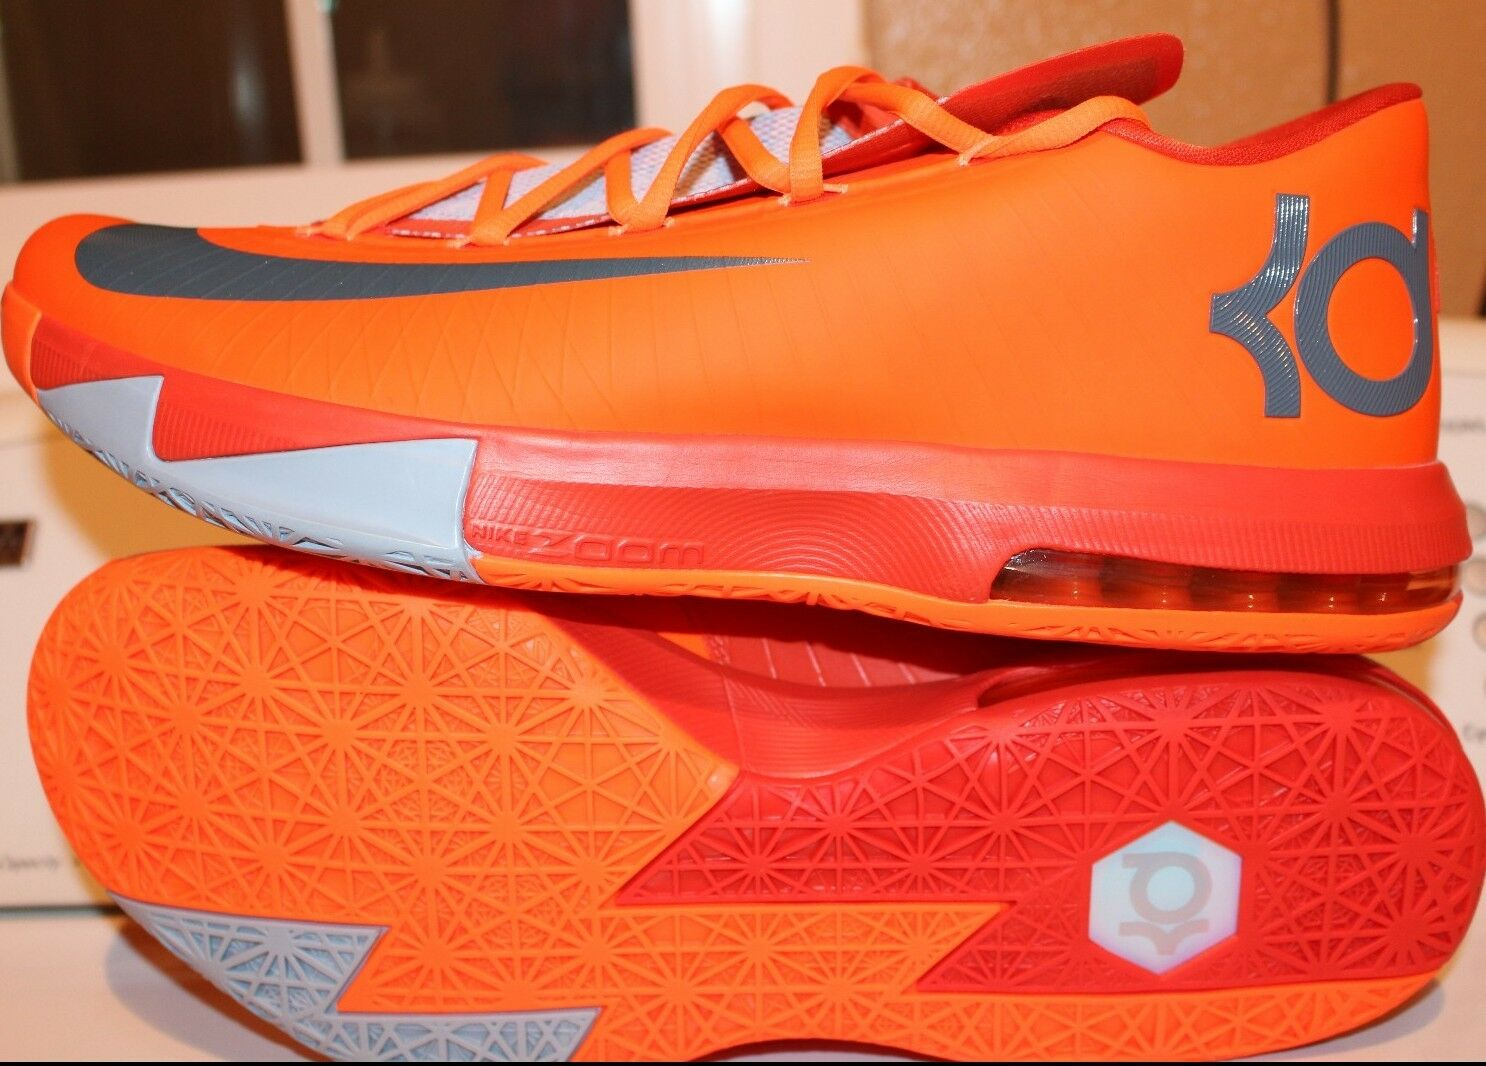 NIKE KD VI 6 NYC 66 SZ: 13.0 ORANGE KEVIN DURANT NEW RARE AUTHENTIC BASKETBALL